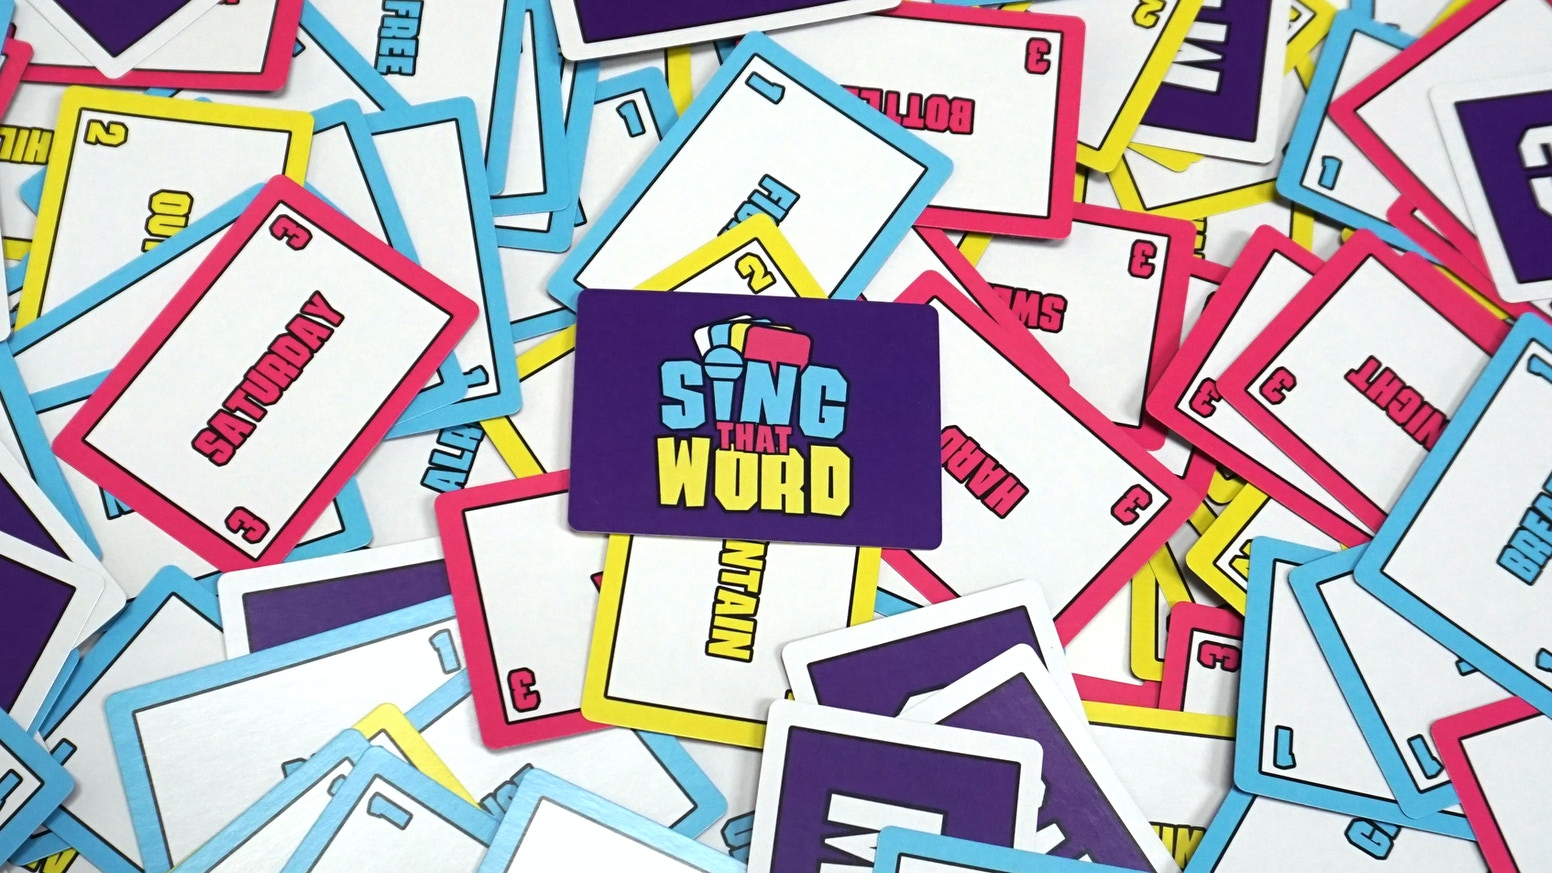 Do you always sing along with songs, know all the words, and love it? Channel your lyrical knowledge into winning at SING THAT WORD!